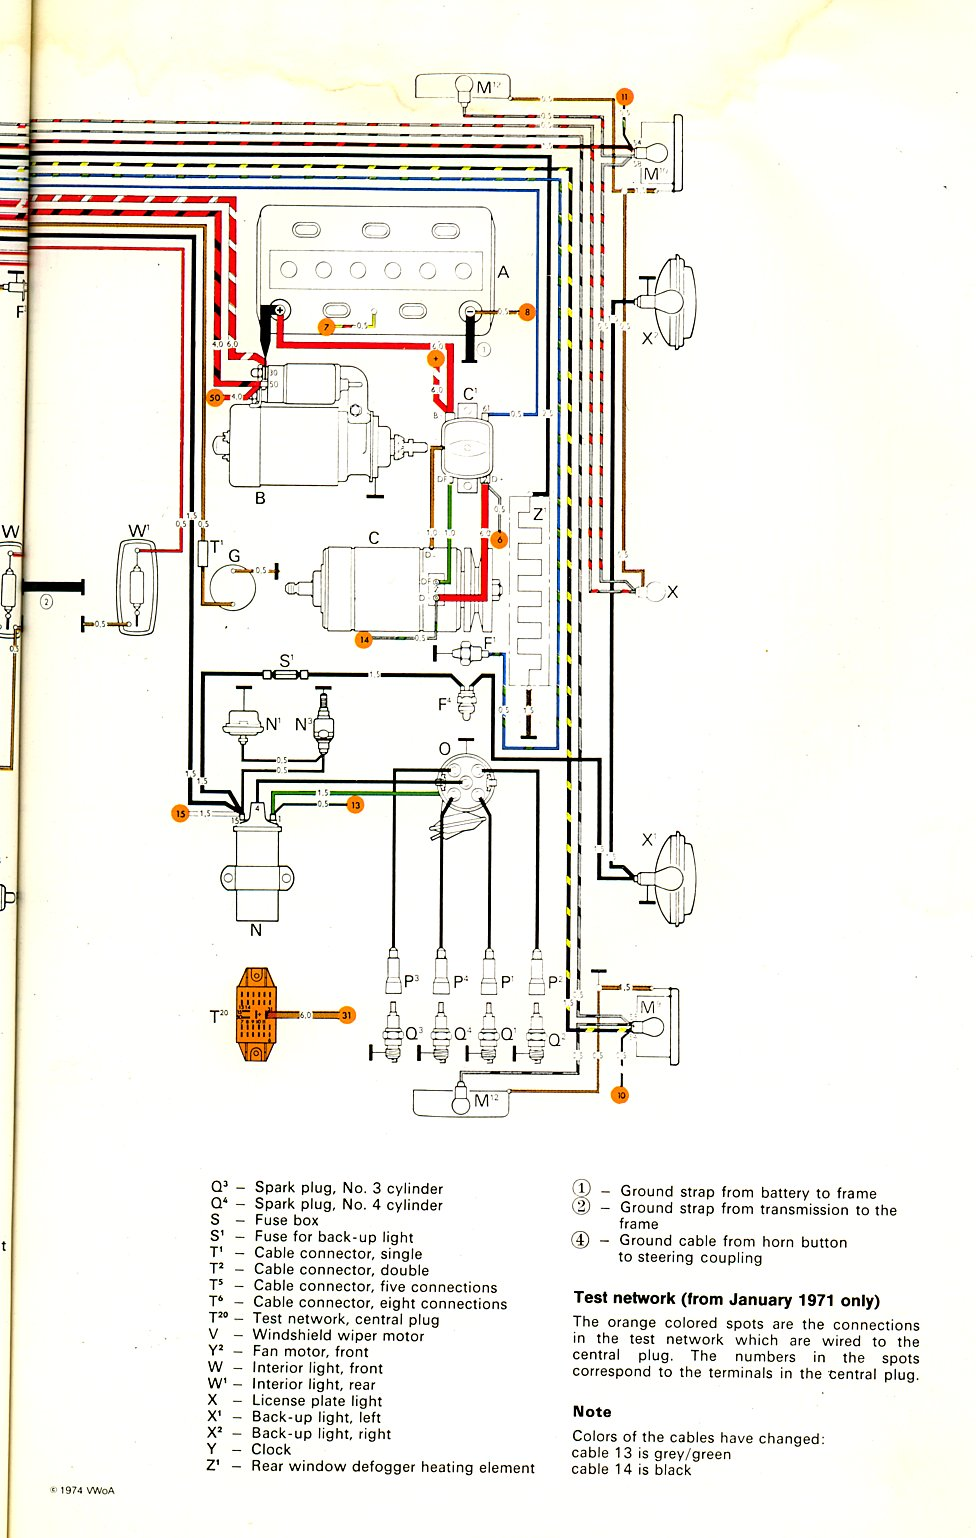 Type 2 Wiring Diagrams 1990 Vanagon Alternator Diagram